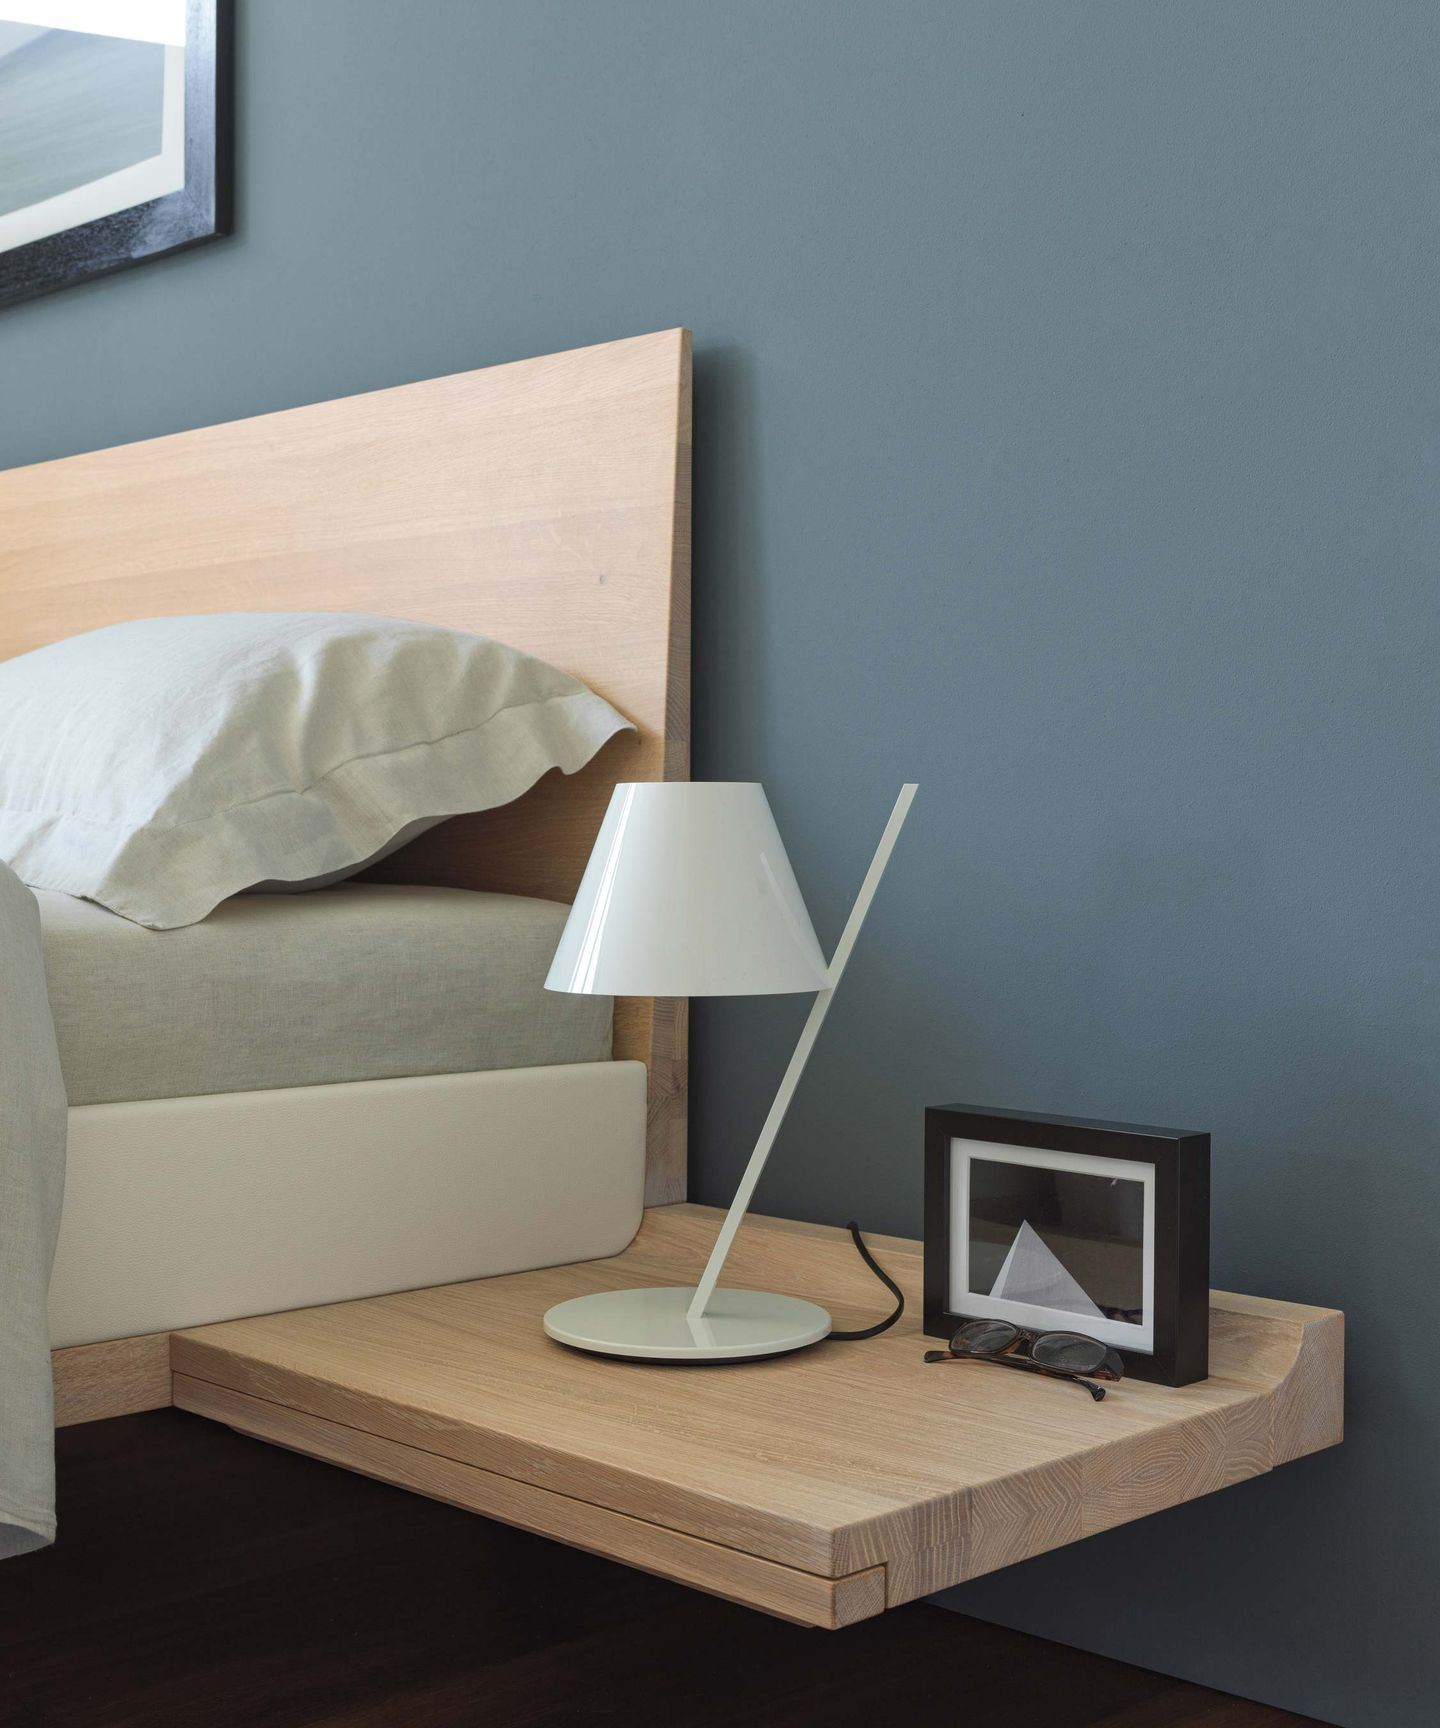 riletto bed with console of solid wood